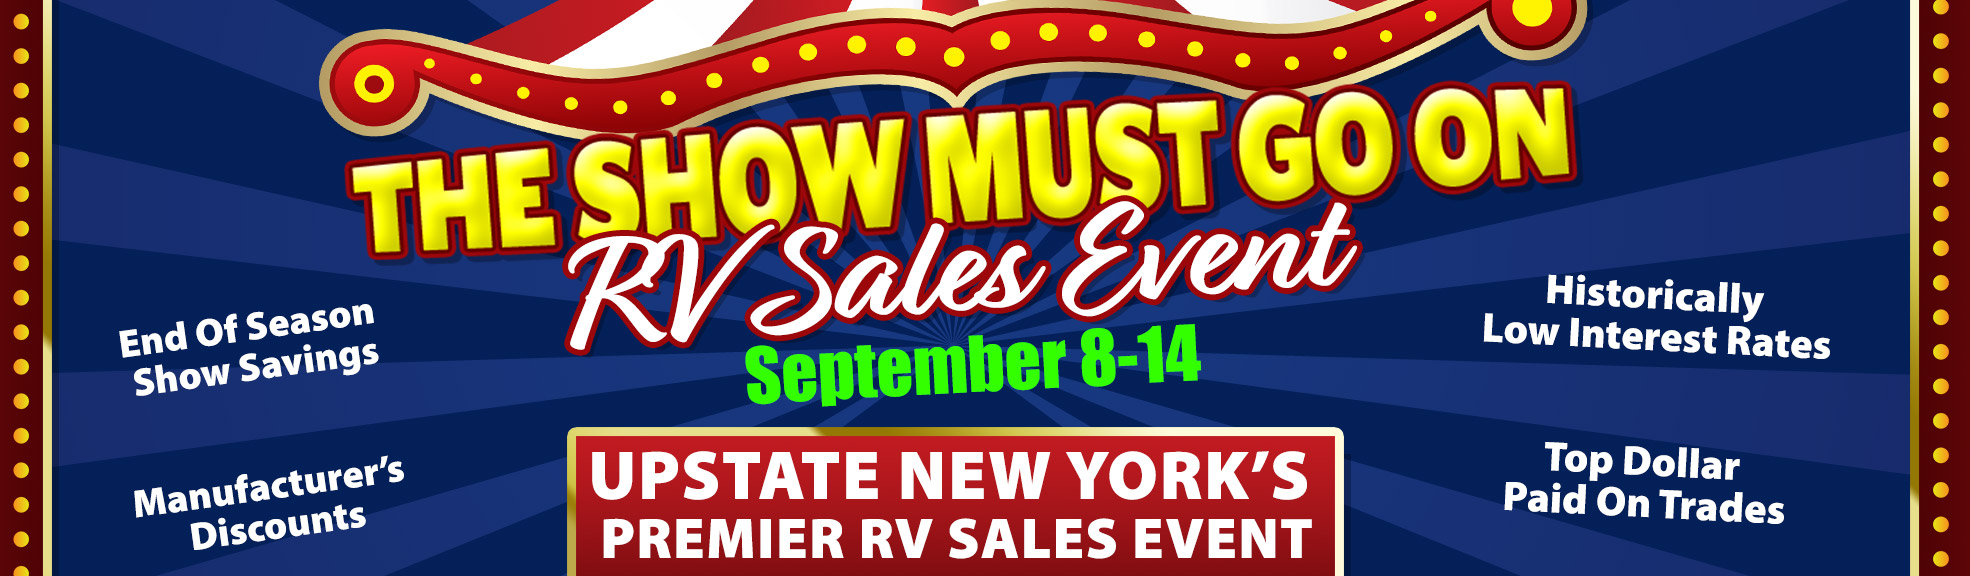 The Show Must Go On Sales Event